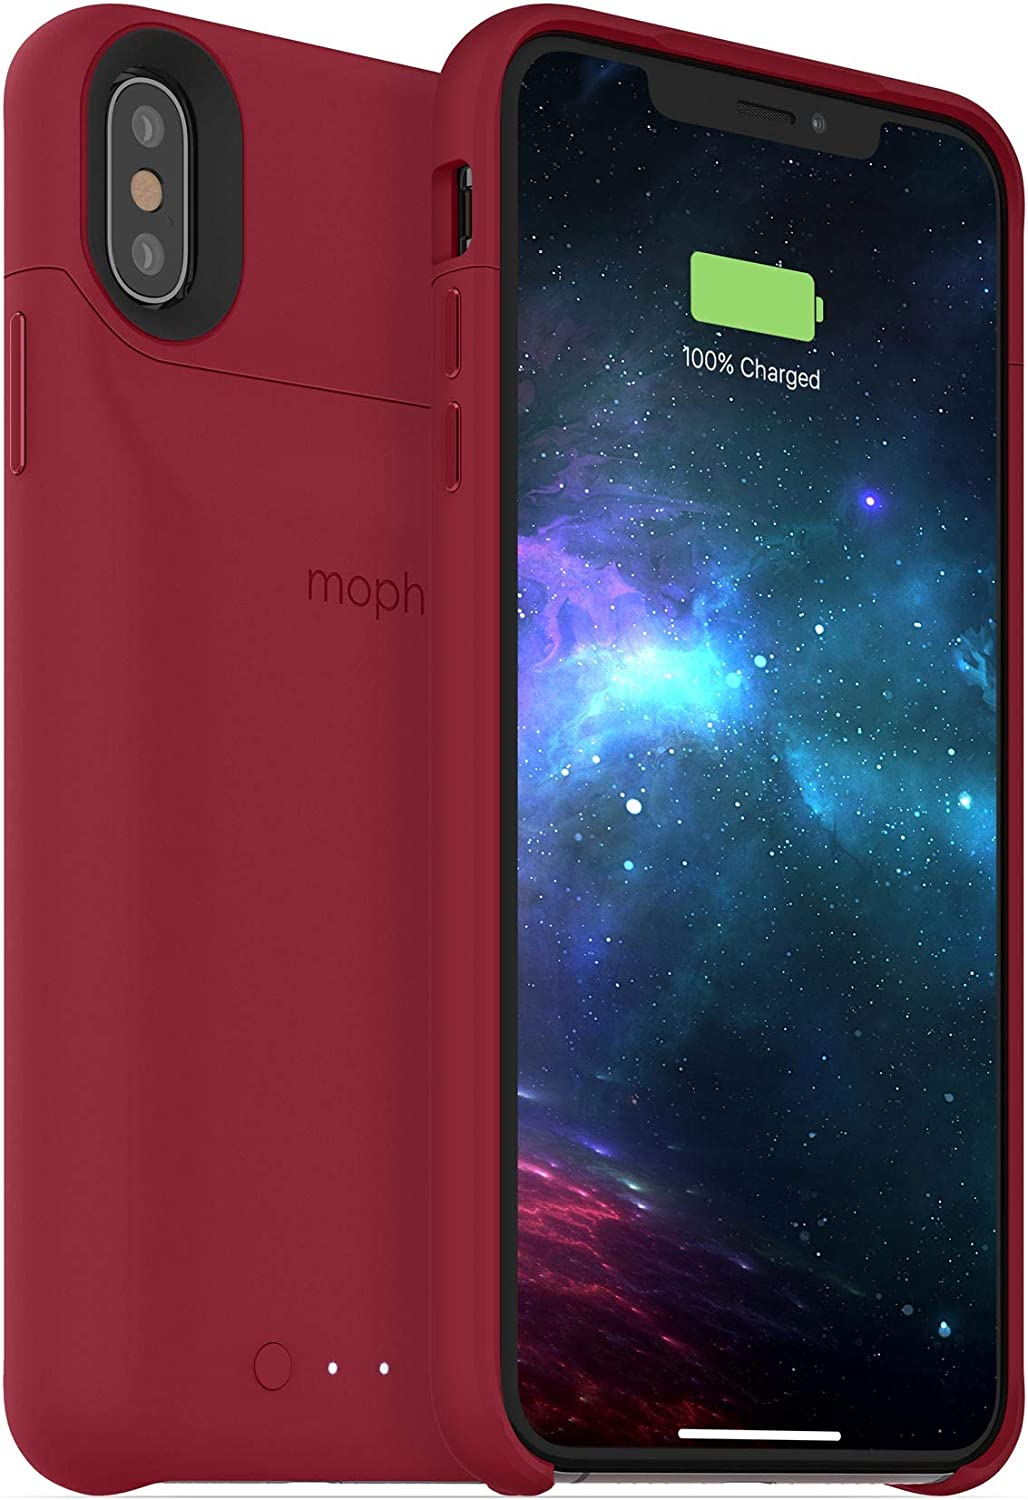 Mophie 401002838 Juice Pack Access - Ultra-Slim Wireless Battery Case - Made for Apple iPhone Xs Max (2,200mAh) - Dark Red